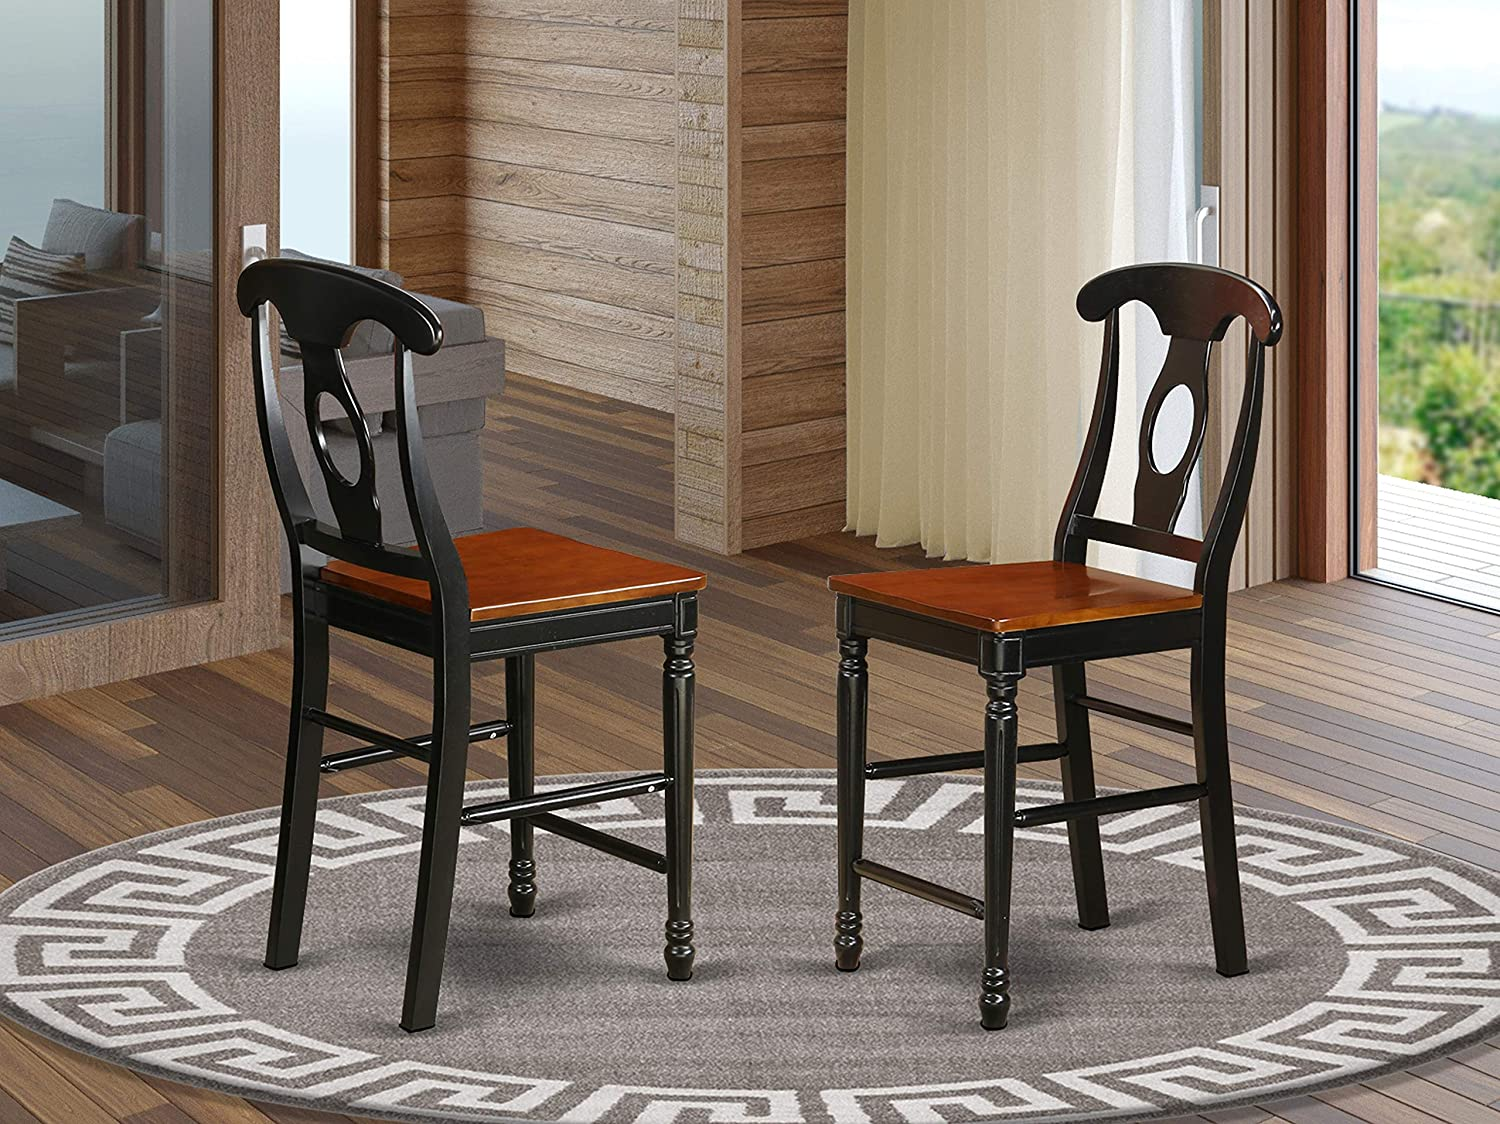 East West Furniture Kenley counter height chairs-Wooden Seat and Black Hardwood Structure counter height bar stools set of 2